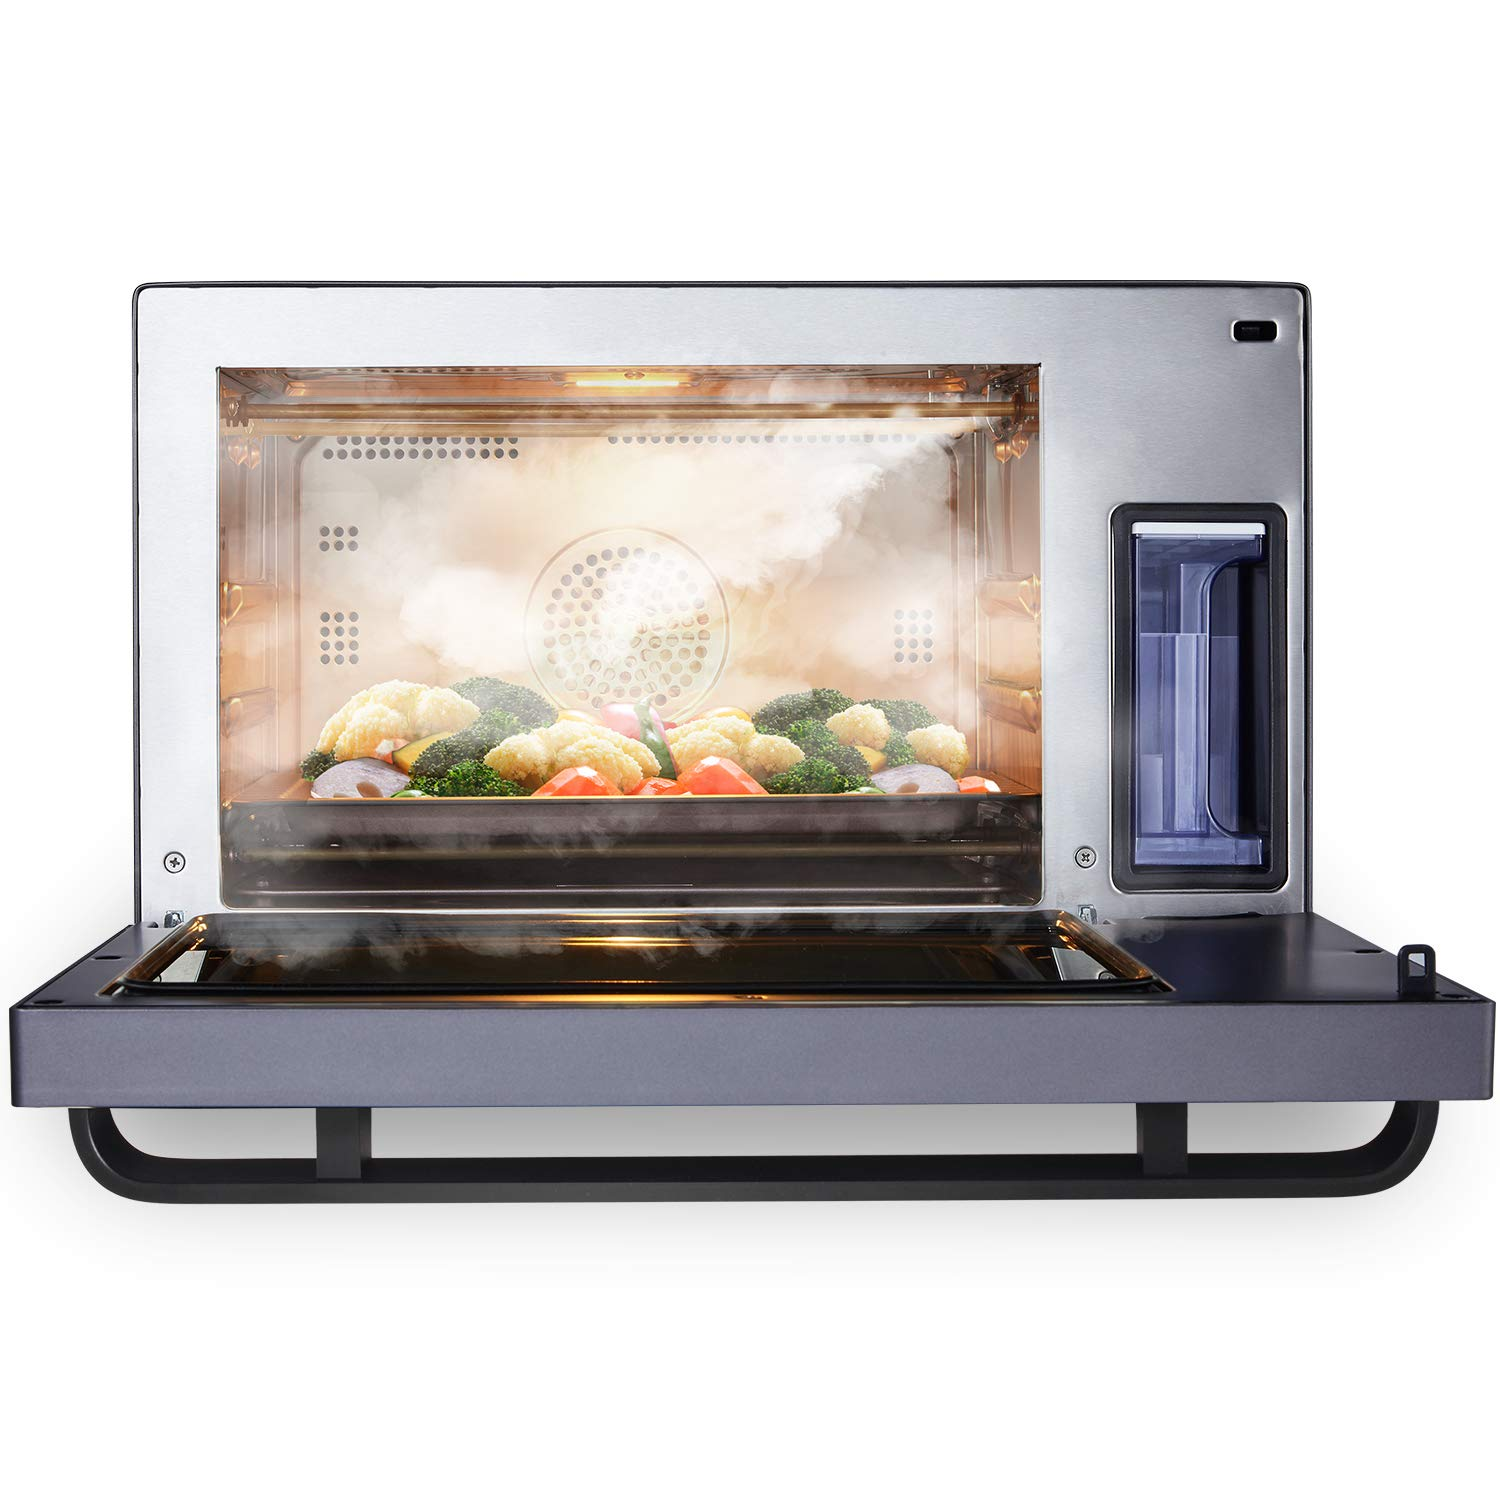 AUG Convection Steam Grill Oven, 0.9 Cu. Ft. Smart Household Countertop Combi Steamer with 8 Cooking Modes, Matte Black Stainless Steel by AUG (Image #3)